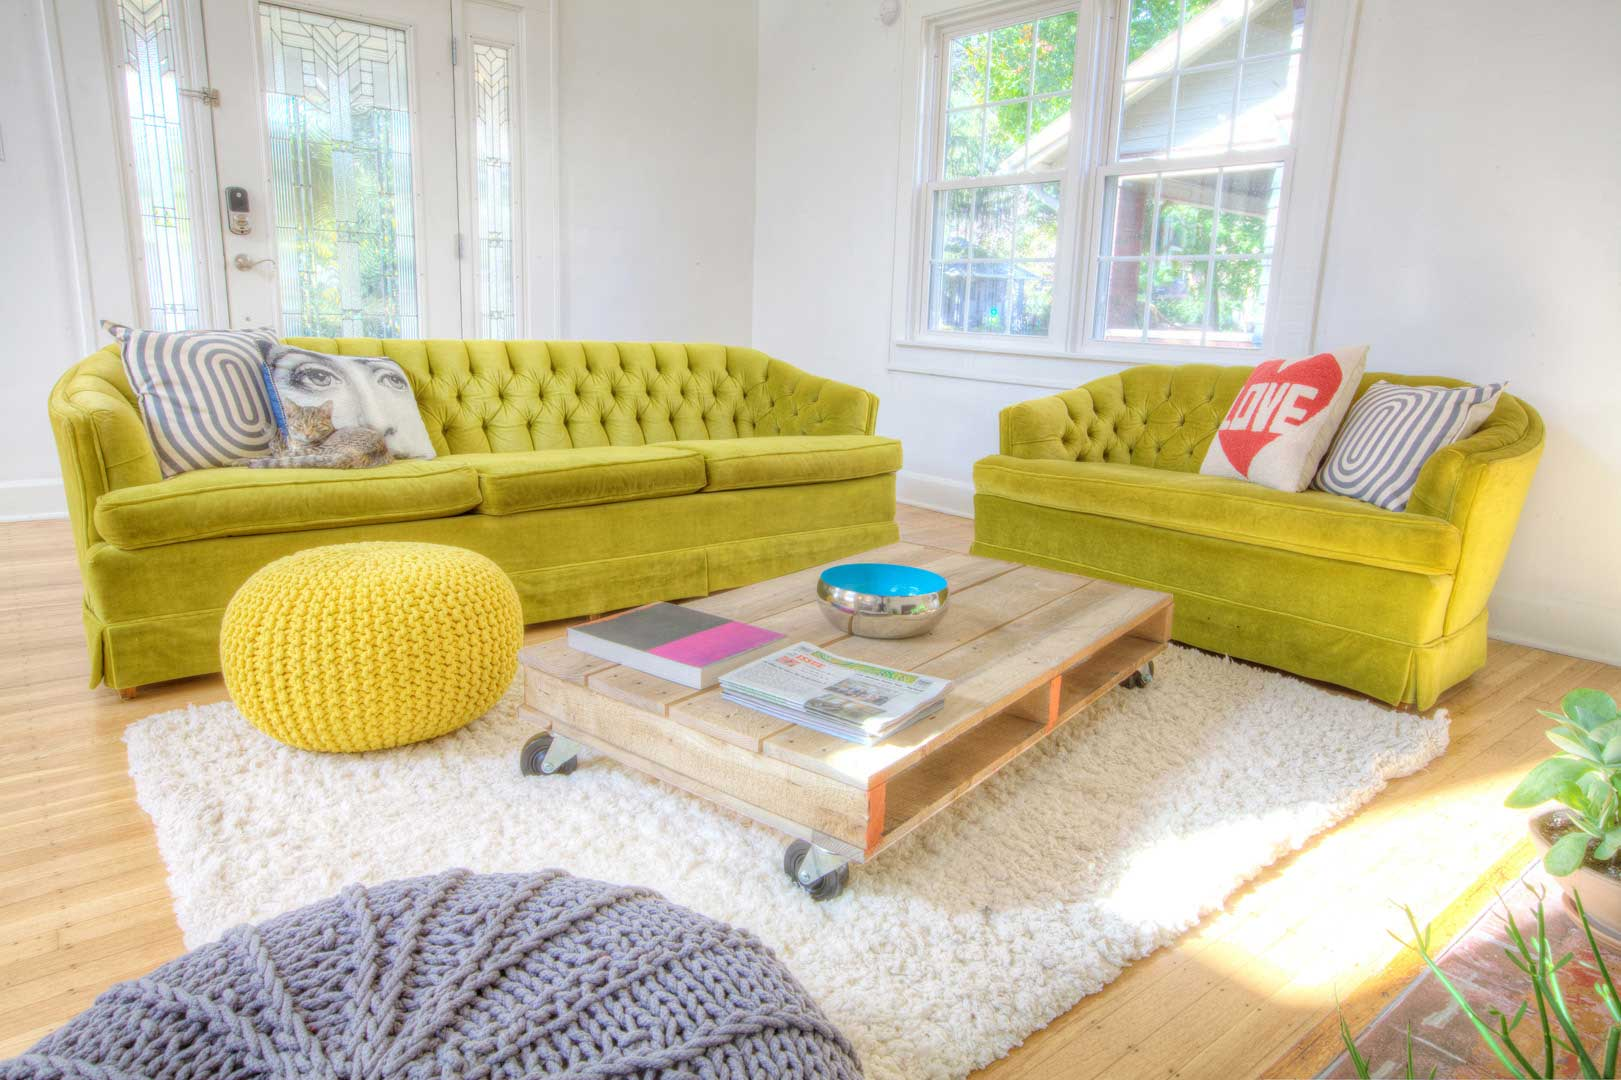 Broad Ripple Bungalow - Green Retro Sofas, Pallet Coffee Table on Wheels Poufs - HAUS Architecture, WERK Building Modern, Christopher Short, Indianapolis Architect